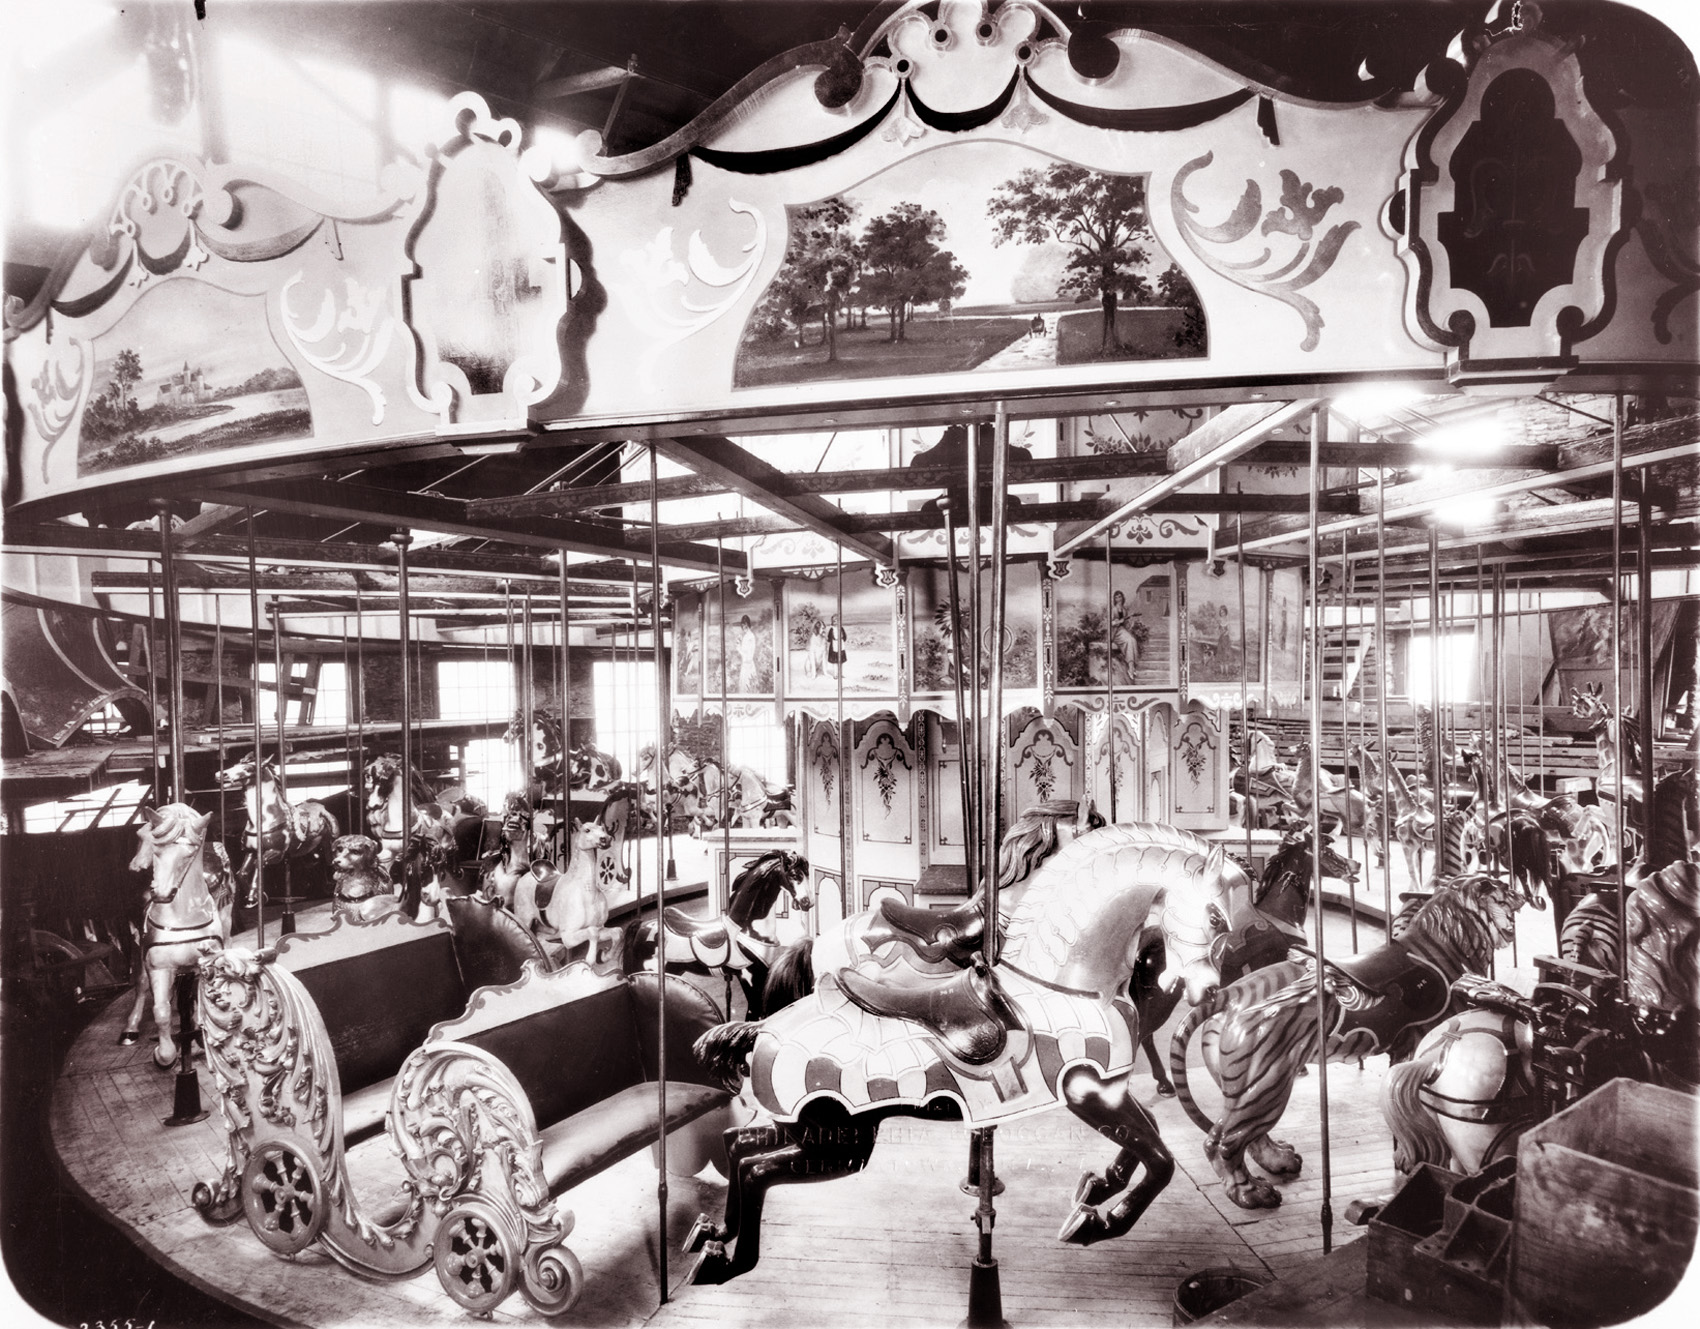 1905-PTC-9-carousel-factory-photo-courtesy-Tom-Rebbie-PTC-archive